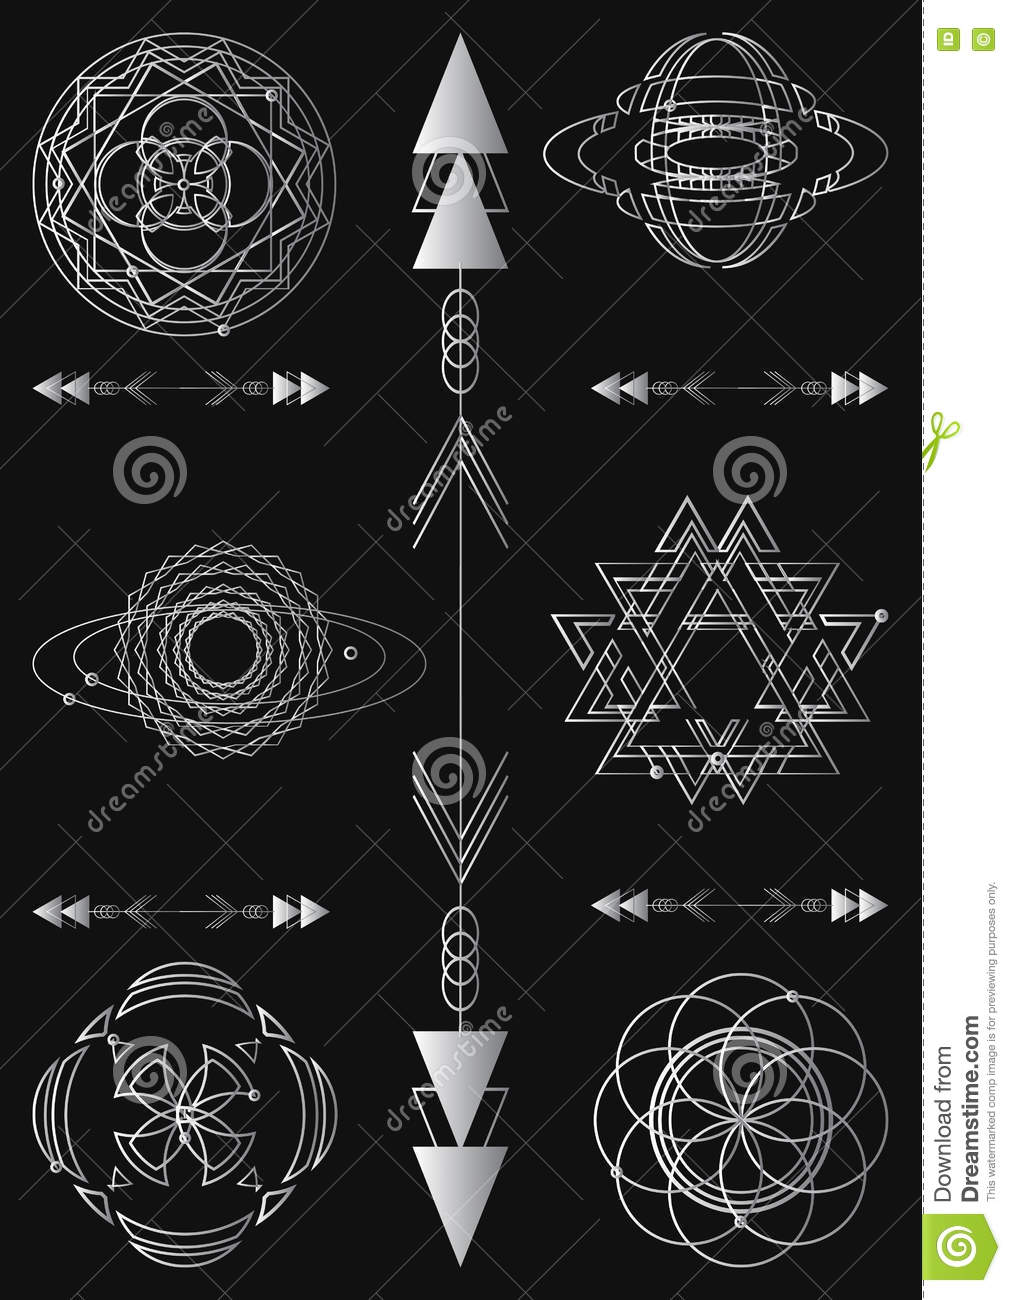 Visual Design Elements : Sacred geometry symbols and elements set vector